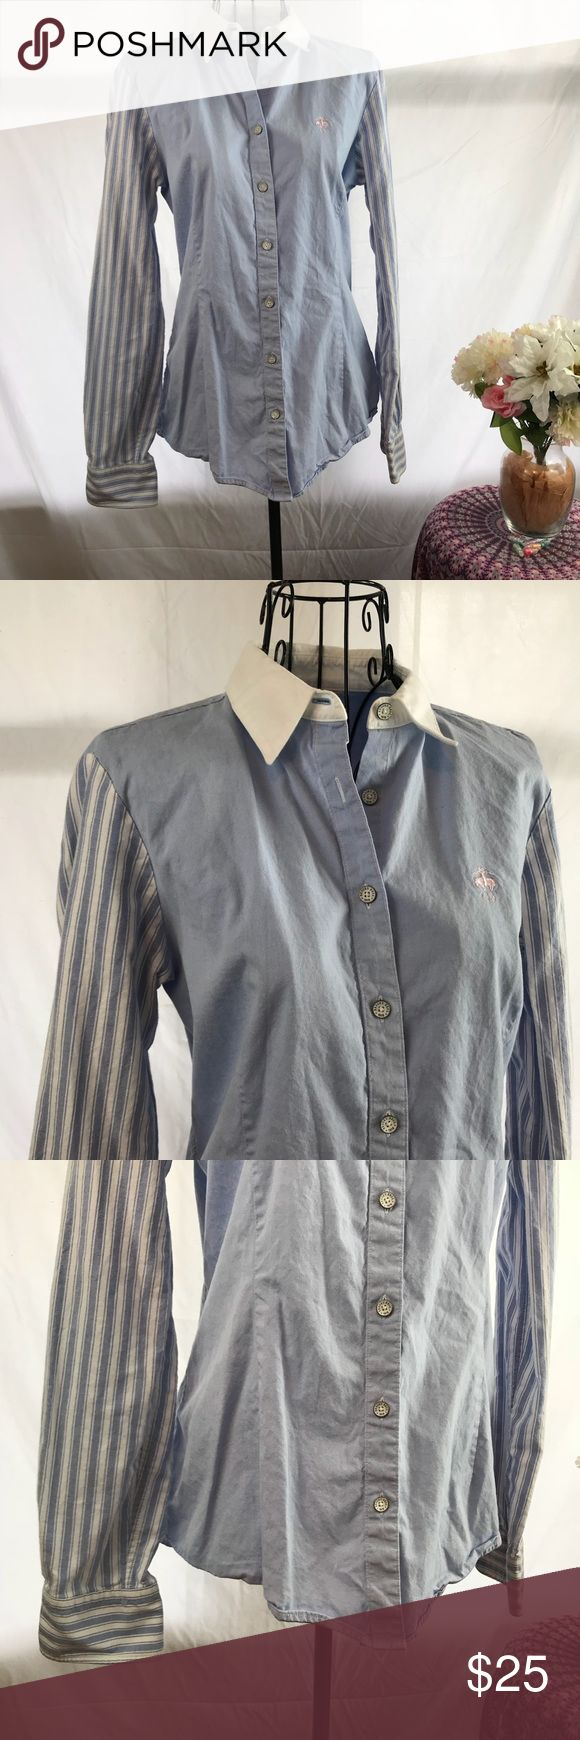 """Brooks Brothers Striped oxford shirt for women Button down Oxford shirt by brooks Brothers, for women. Featuring solid blue body and striped arms design. Size is 6  Measurements are approximate  Pit to pit 18""""  Length 22""""  Worn a couple of times only no flaws Brooks Brothers Tops Button Down Shirts"""